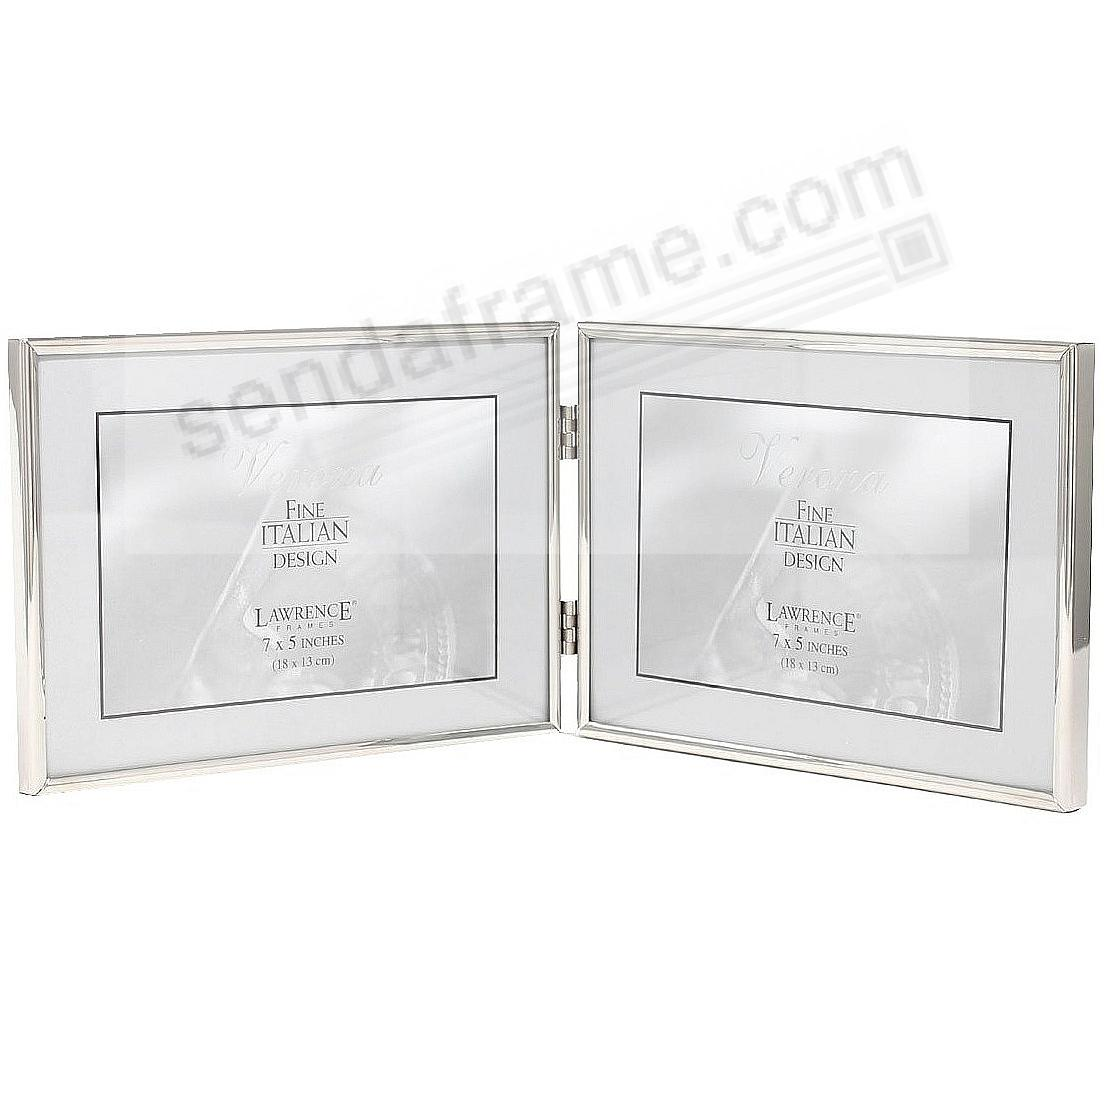 Polished SIMPLY SILVER double landscape hinged 7x5 frame by Lawrence®